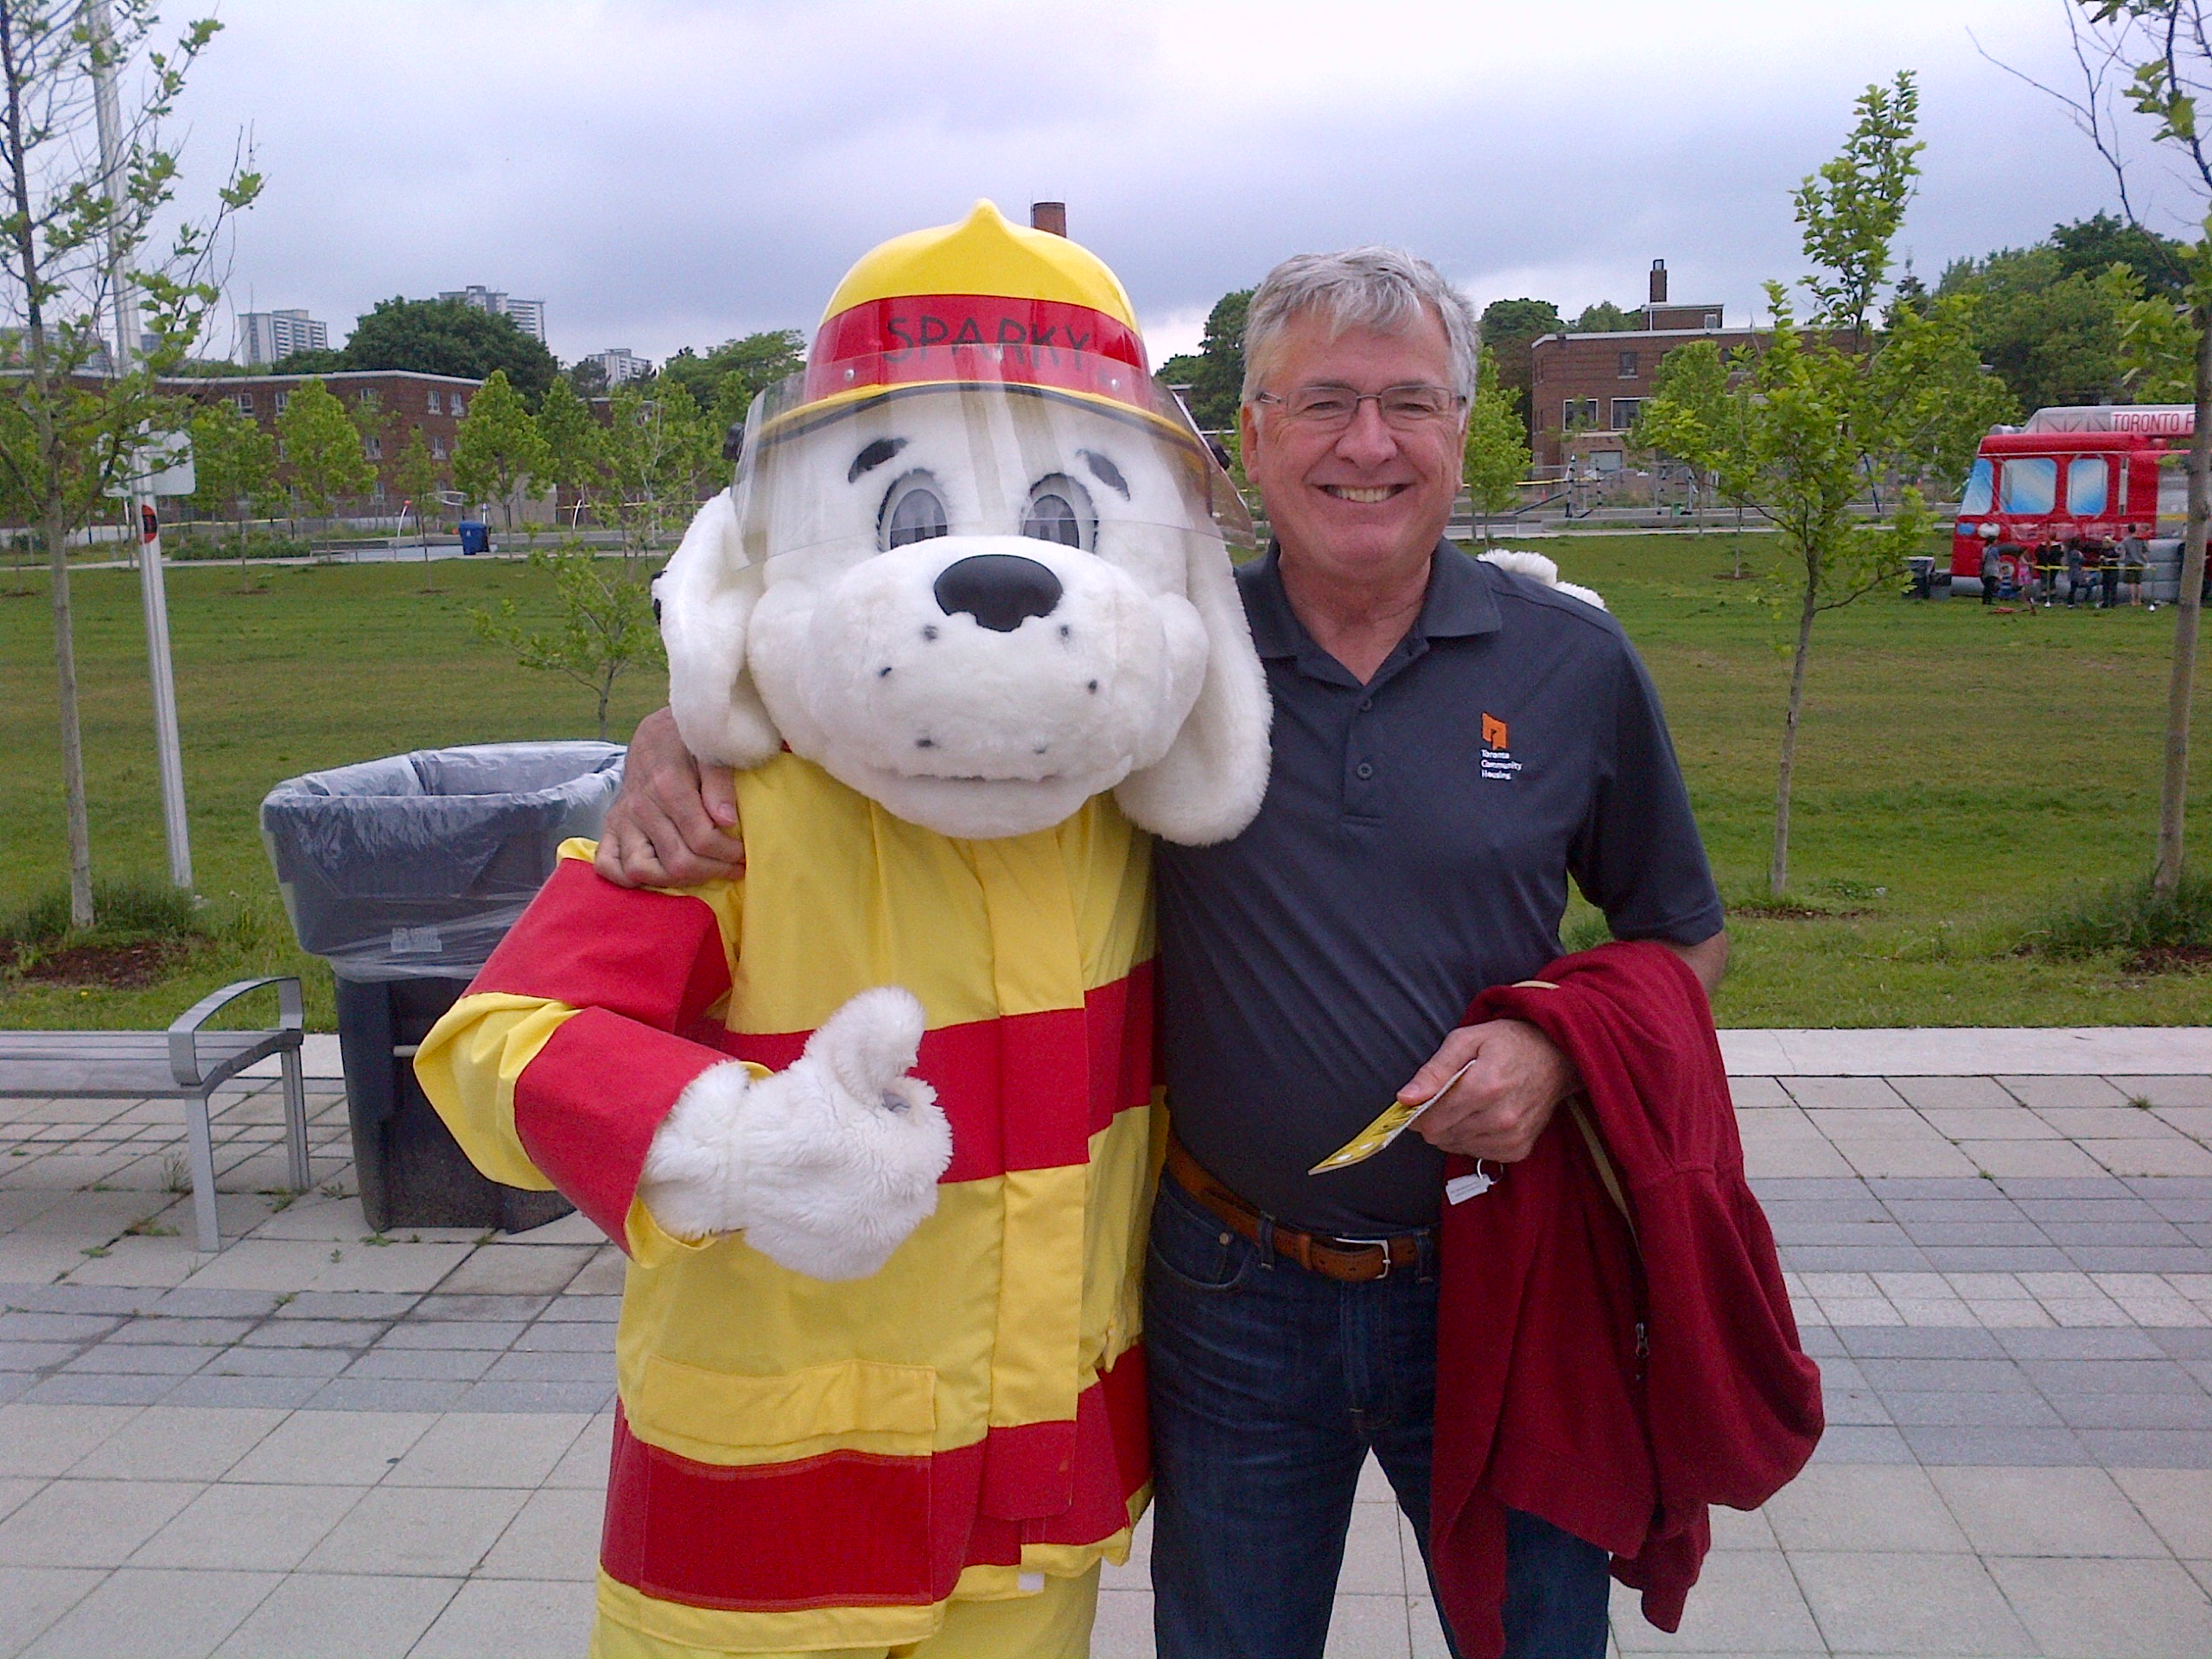 Sparky the fire dog and Greg Spearn, President and CEO (Interim) posing for the camera